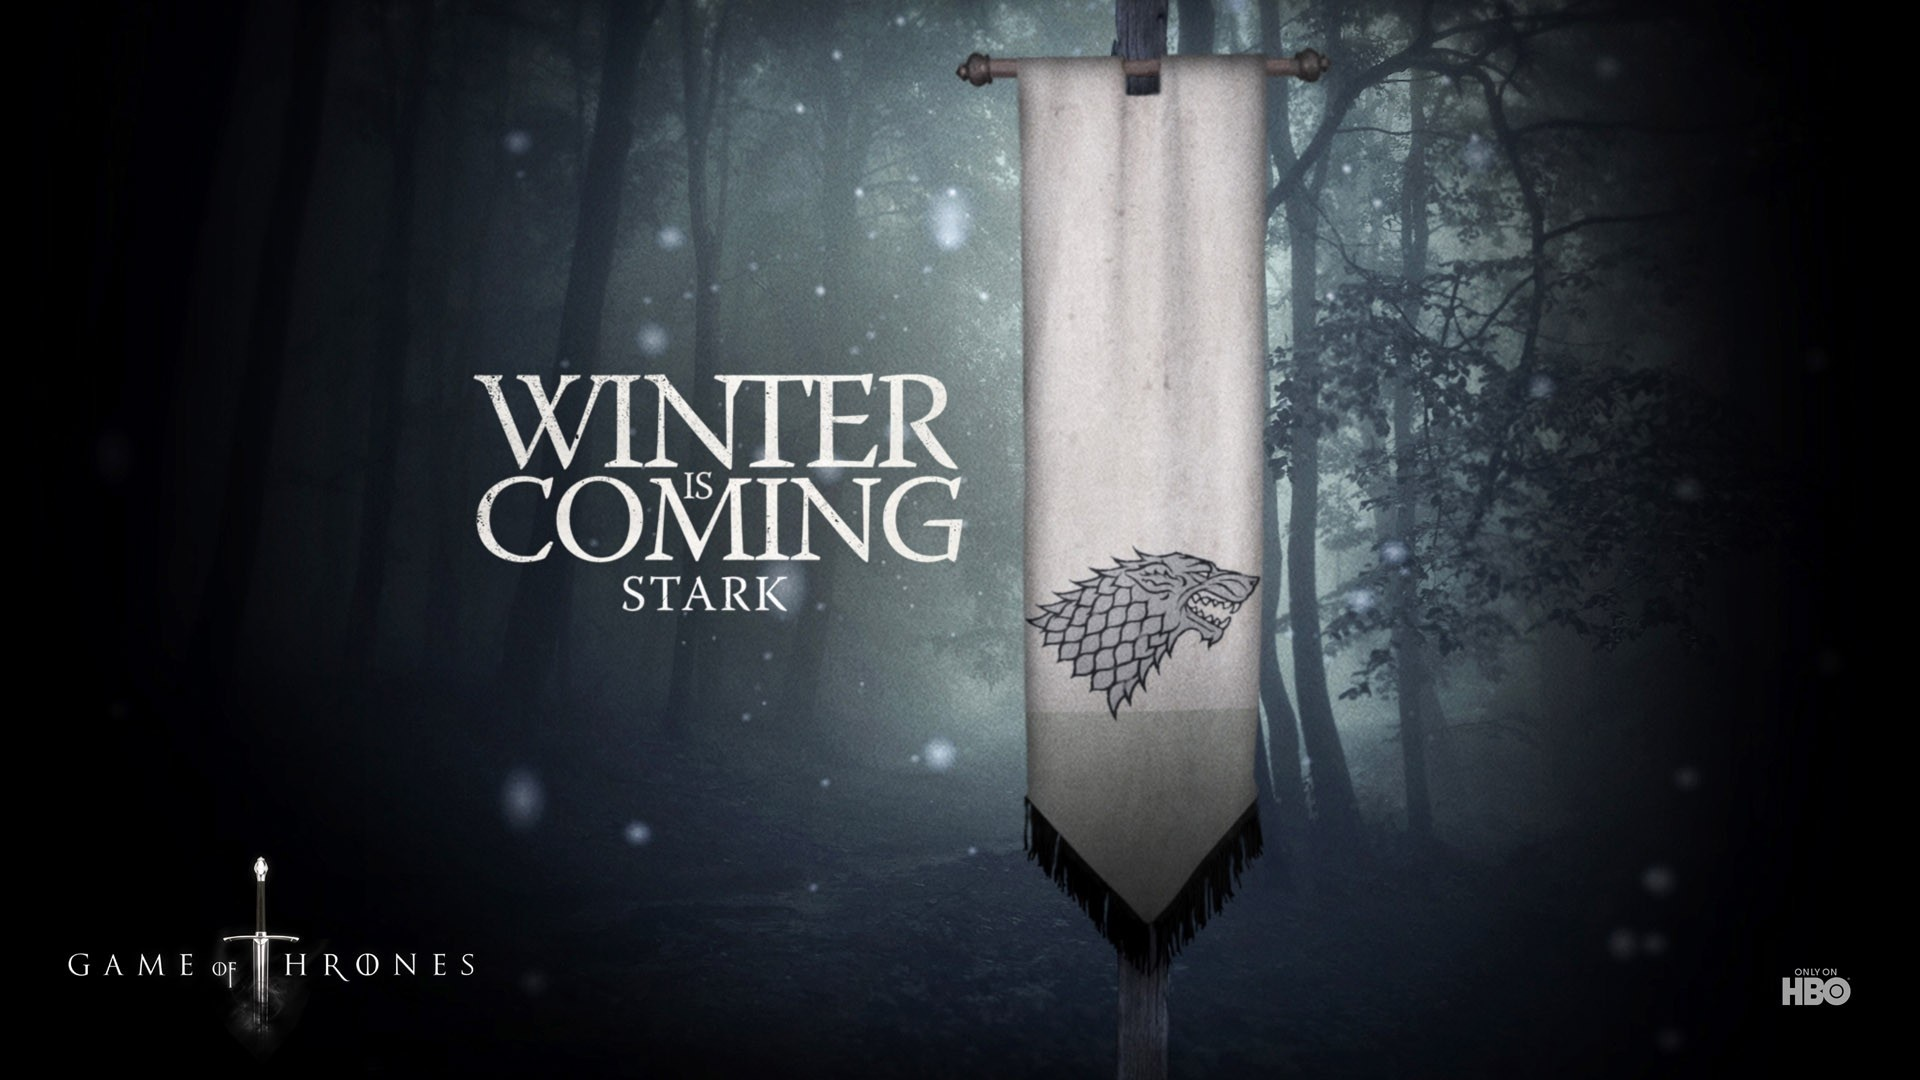 Game of Thrones Winter is Coming Wallpaper